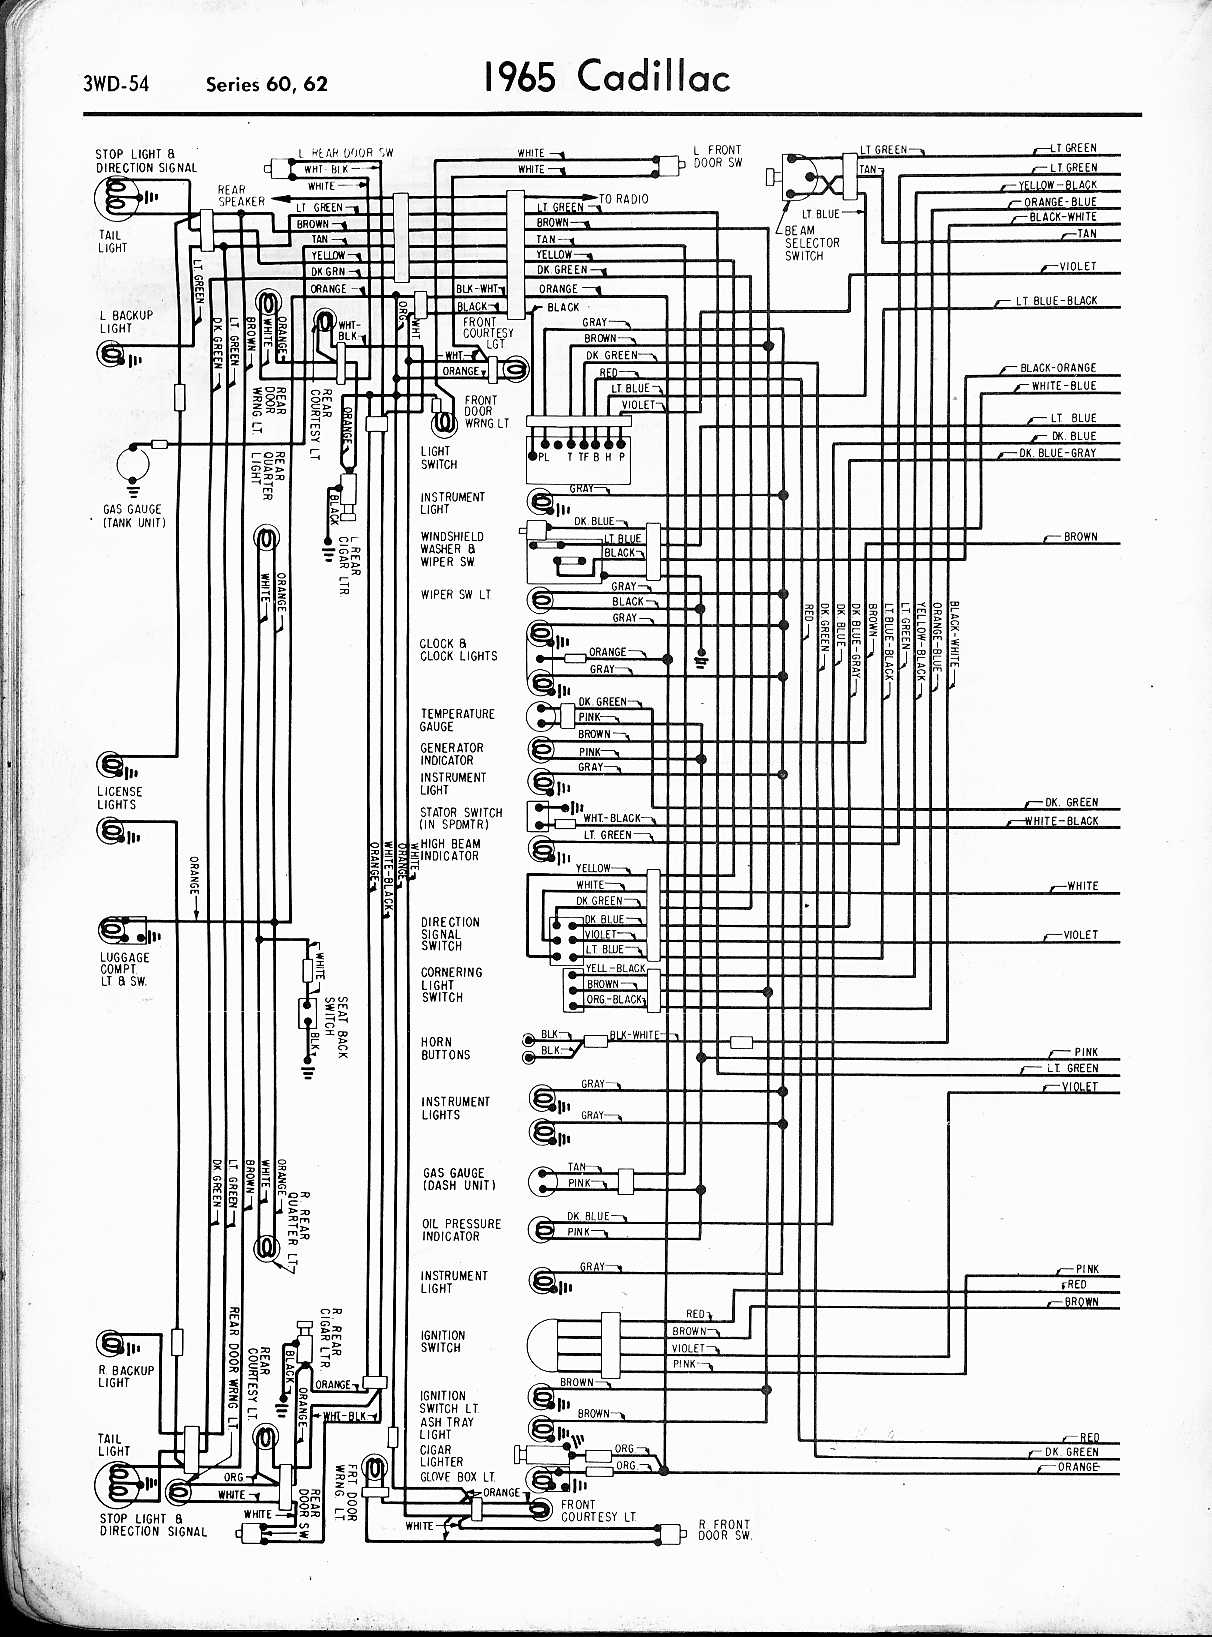 66 cadillac wiring diagram schematic wiring diagram schematicsStandard Body And Power Wiring Circuit Diagram Of 1966 Cadillac 68169 Model #7